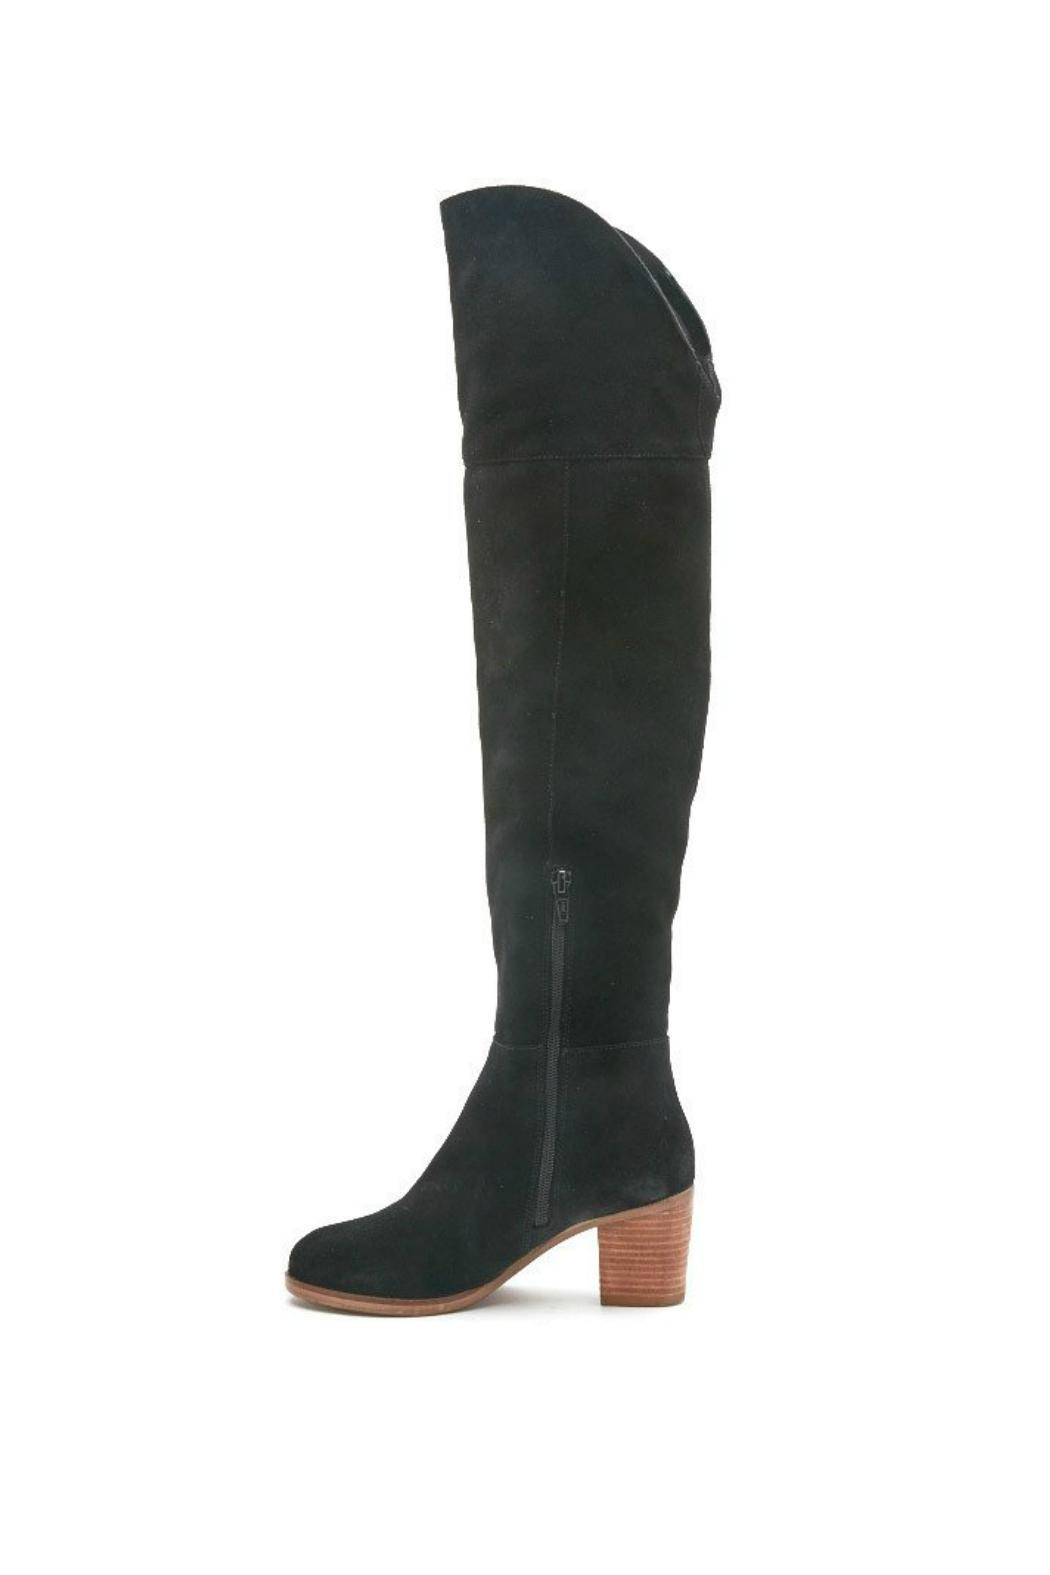 c98522a58f1 Coconuts by Matisse Muse Knee Boots from New Jersey by Charlotte s ...